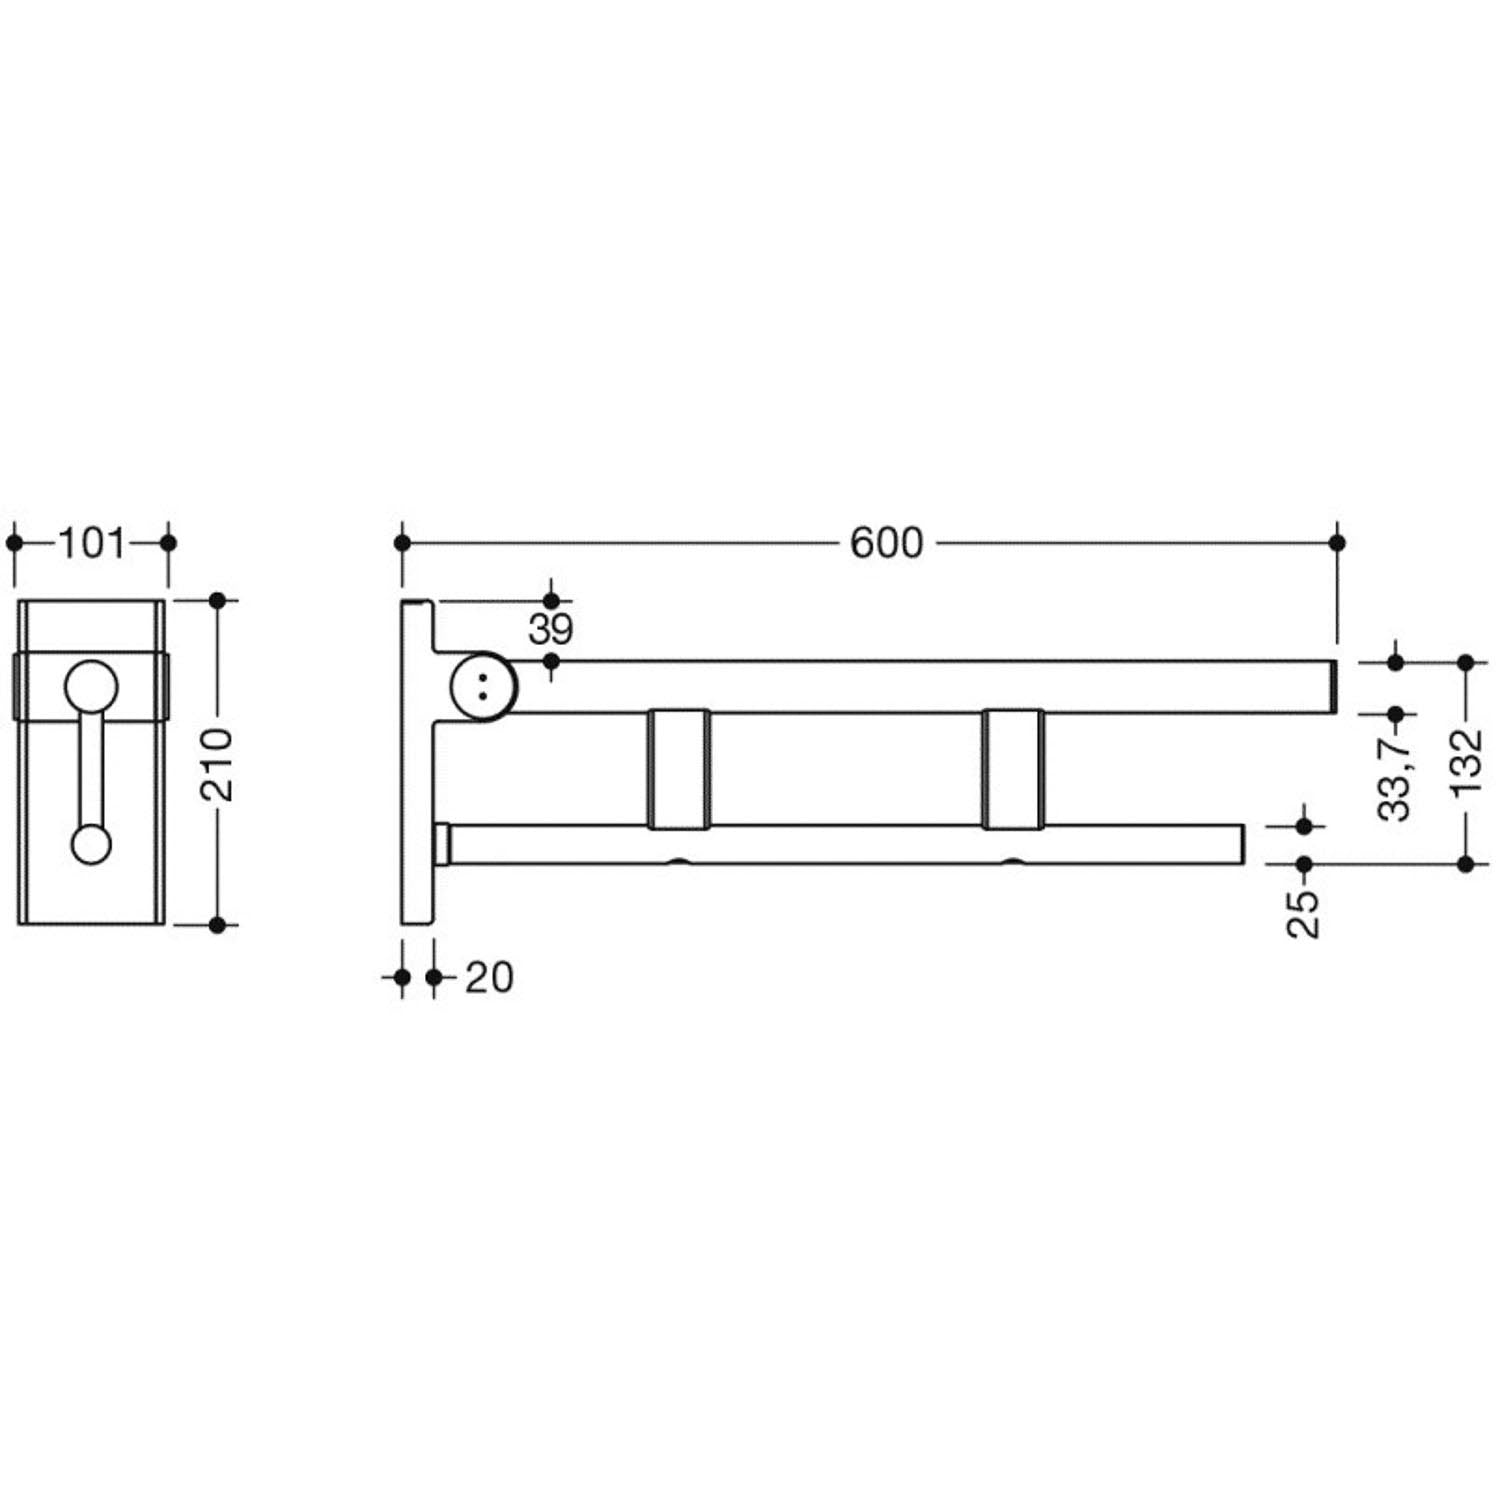 600mm Freestyle Removable Hinged Grab Rail Set with a satin steel finish dimensional drawing